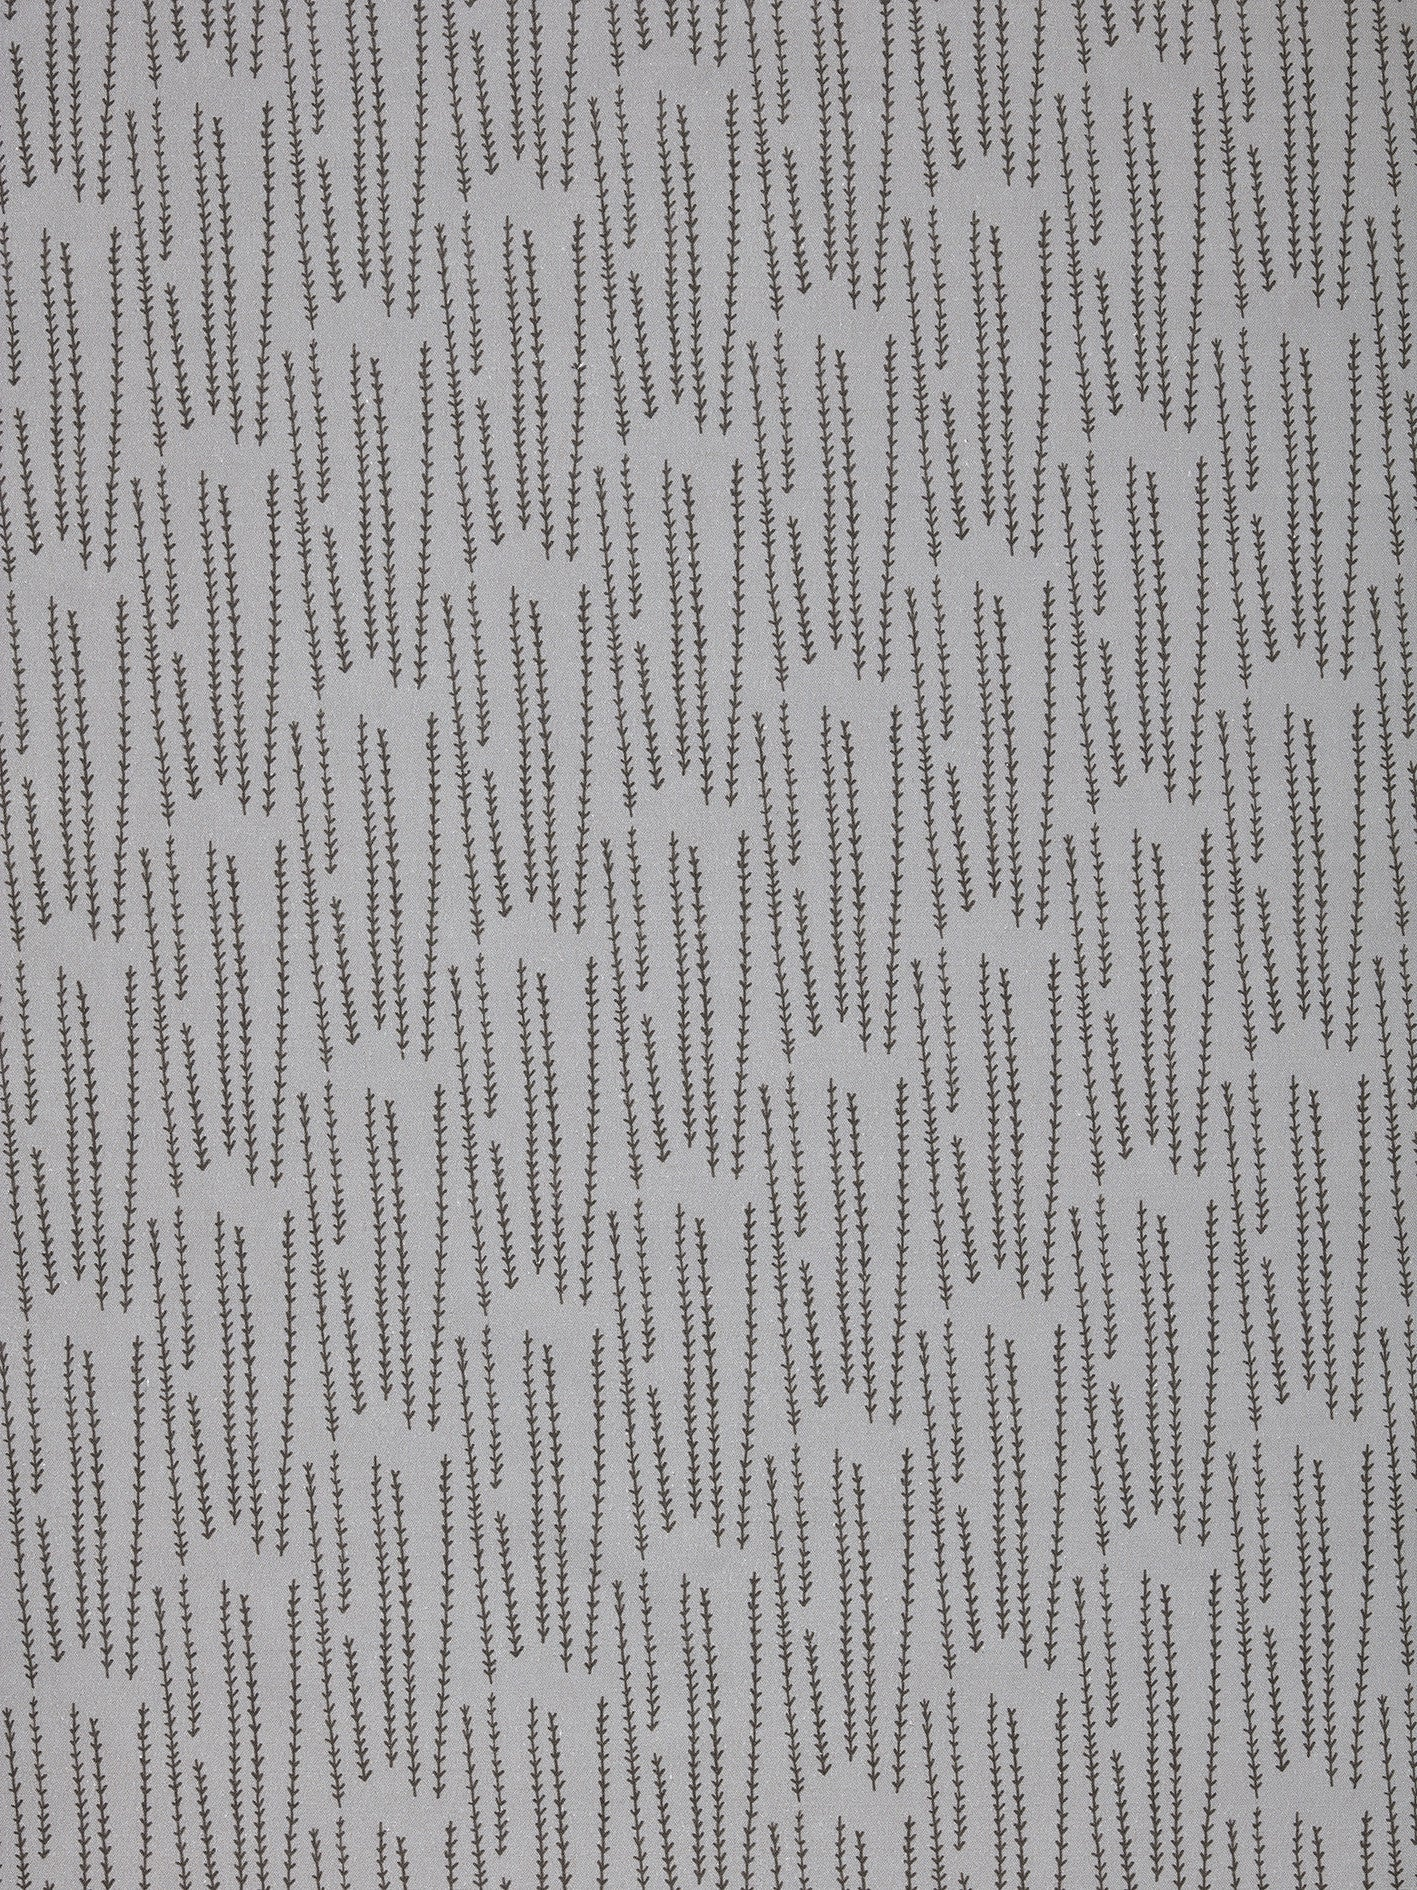 Graphic Rosemary Sprig Pattern Printed Linen Cotton Canvas Fabric in Light Dove Grey & Dark Stone Grey